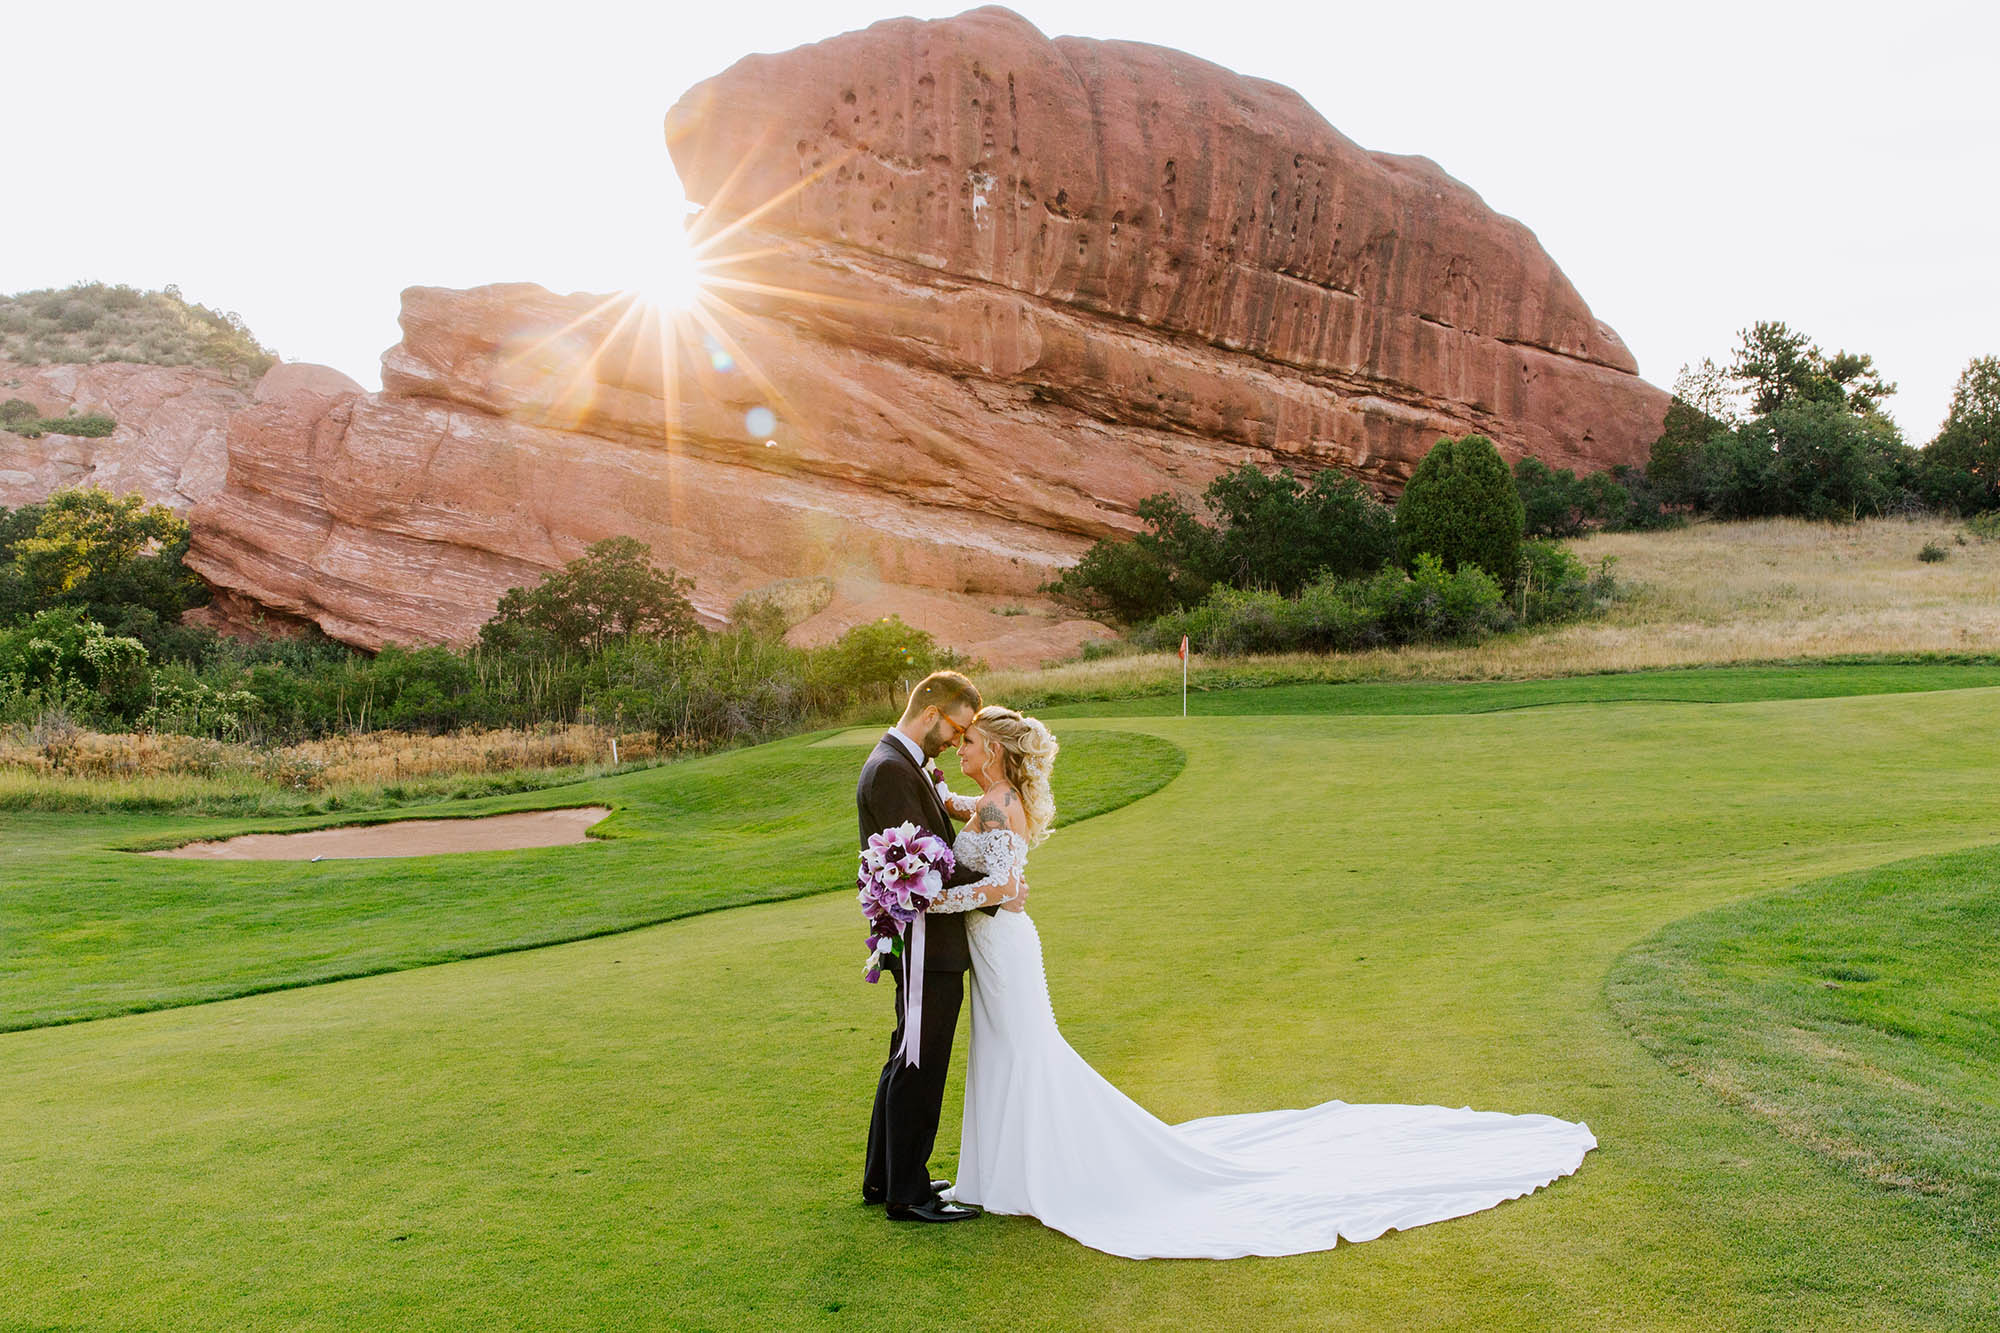 Emily + Joshua | Morrison, Colorado Wedding at Red Rocks Country Club